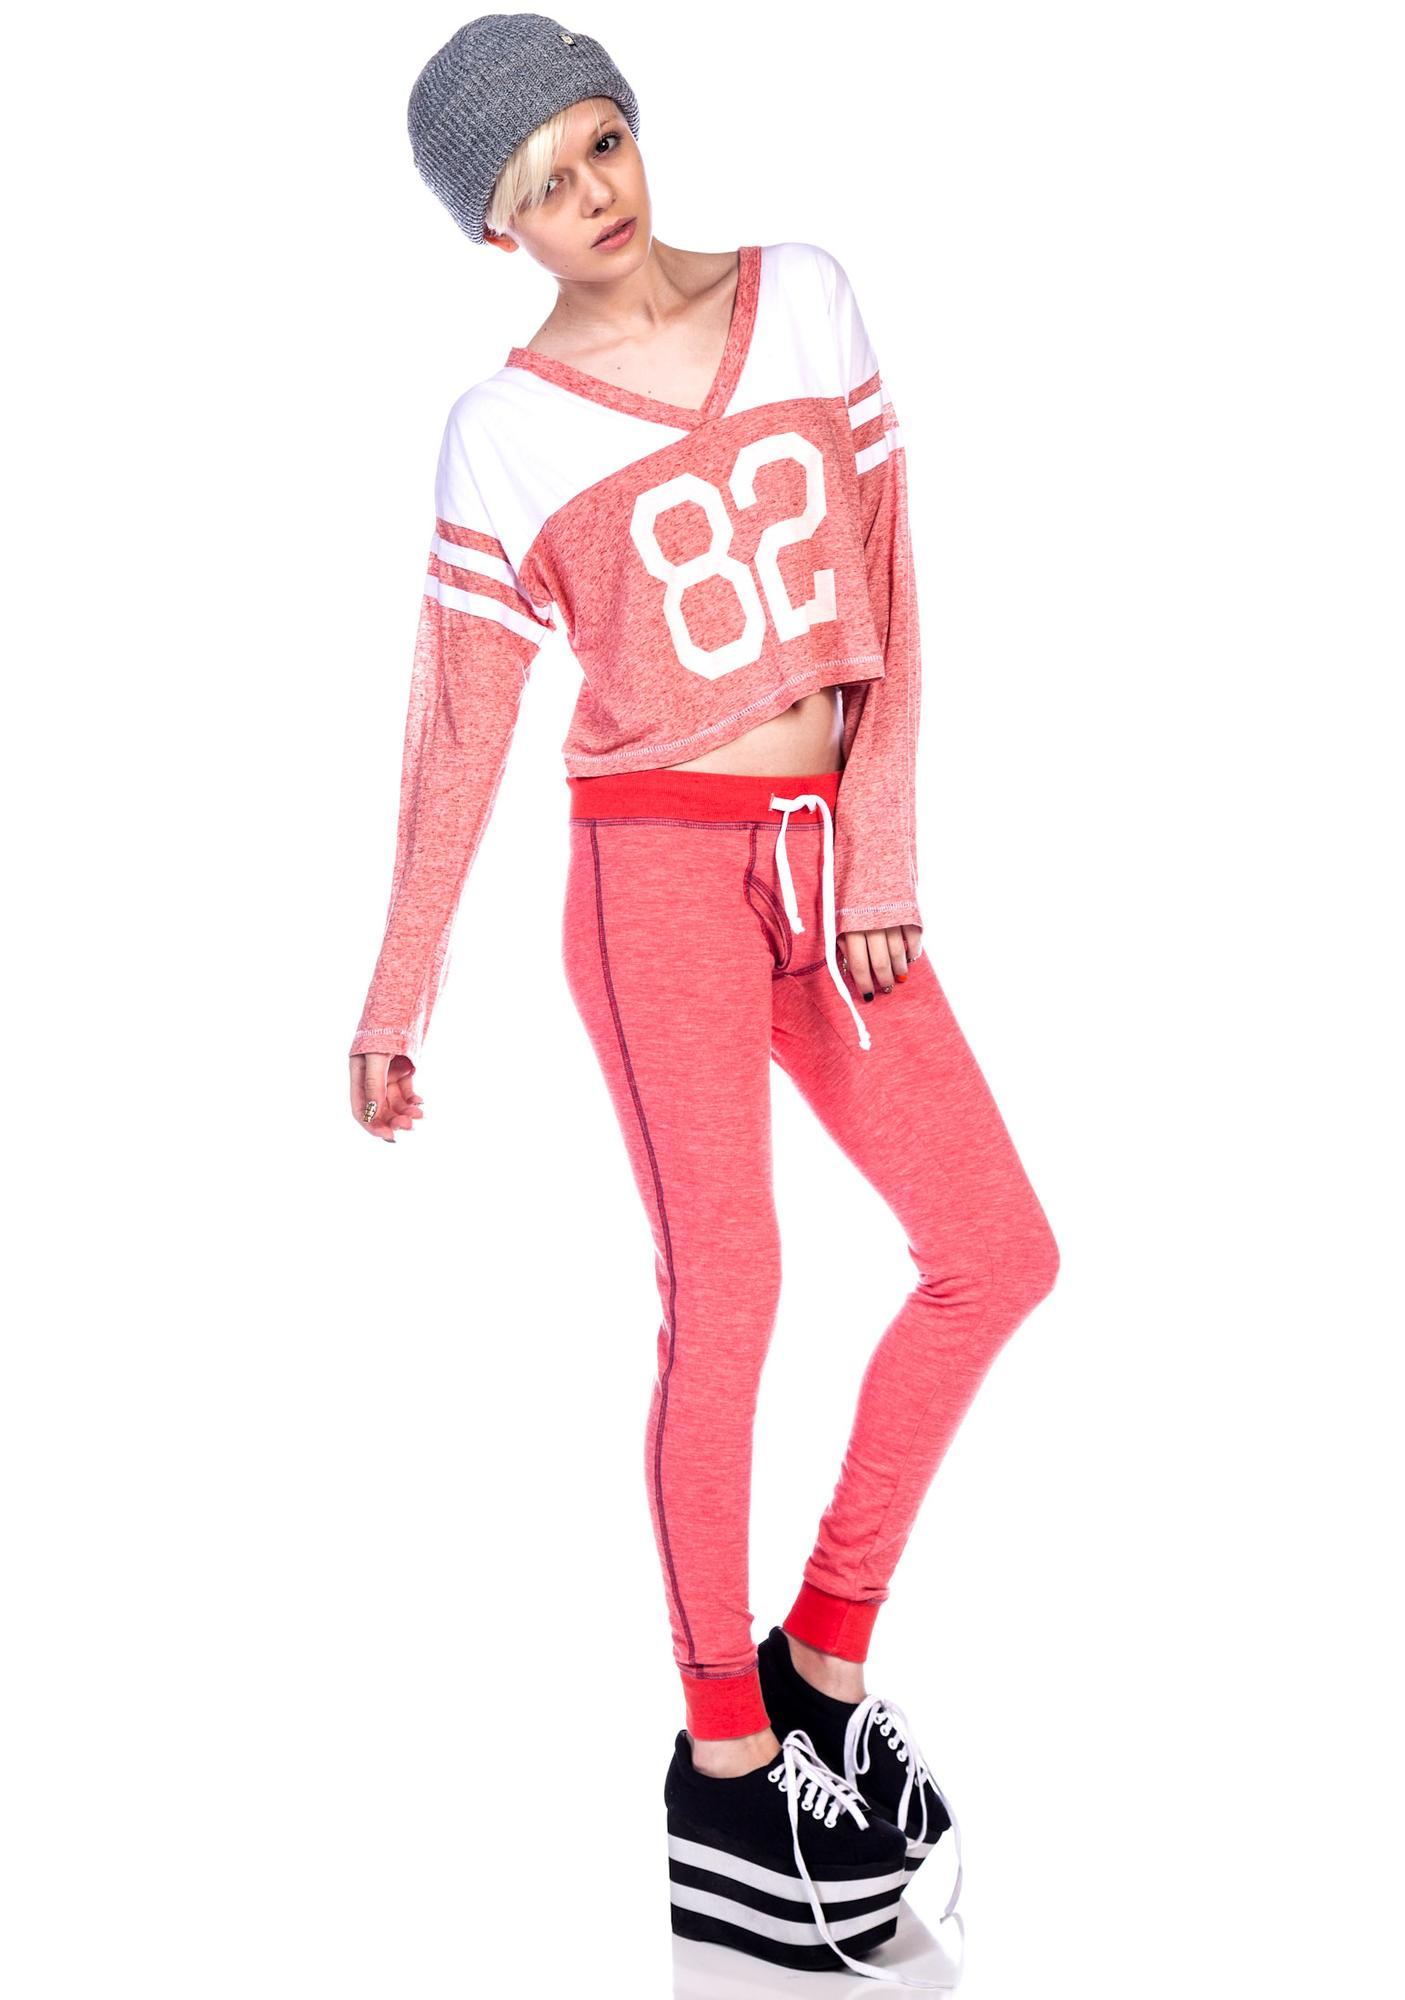 Rebel Yell 82 Cropped Hockey Jersey